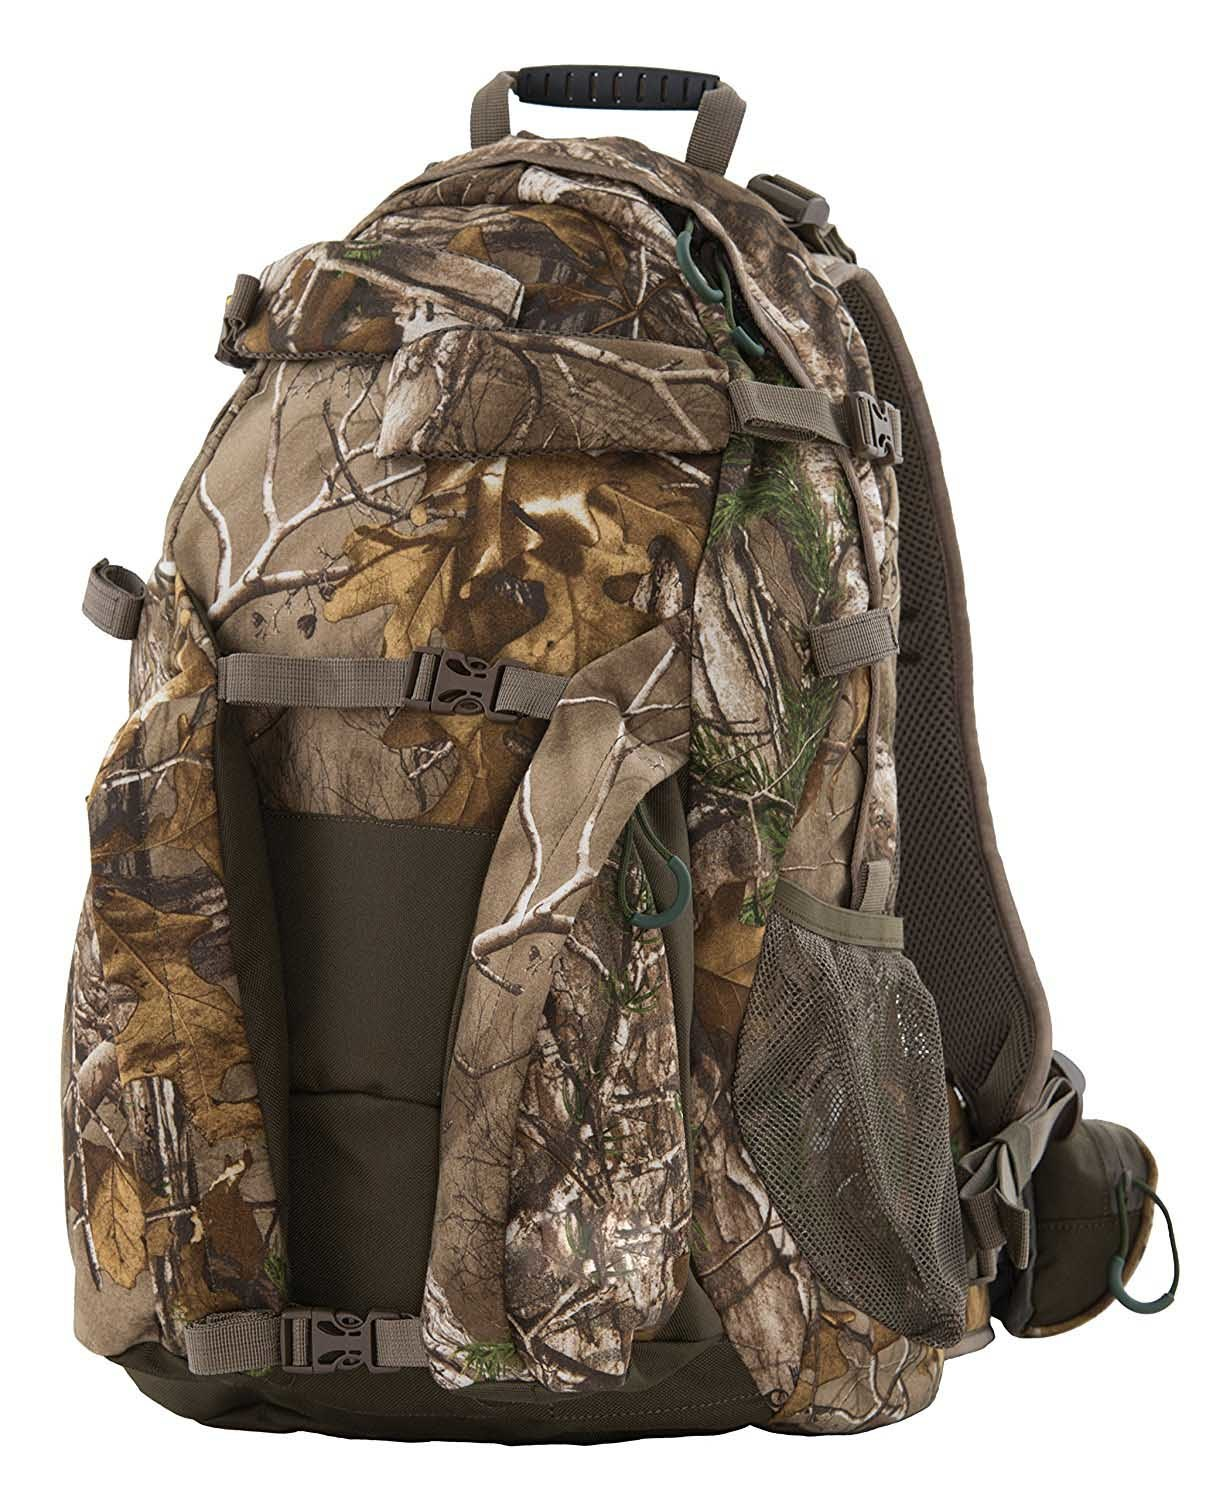 New Outdoor Hunting Backpack